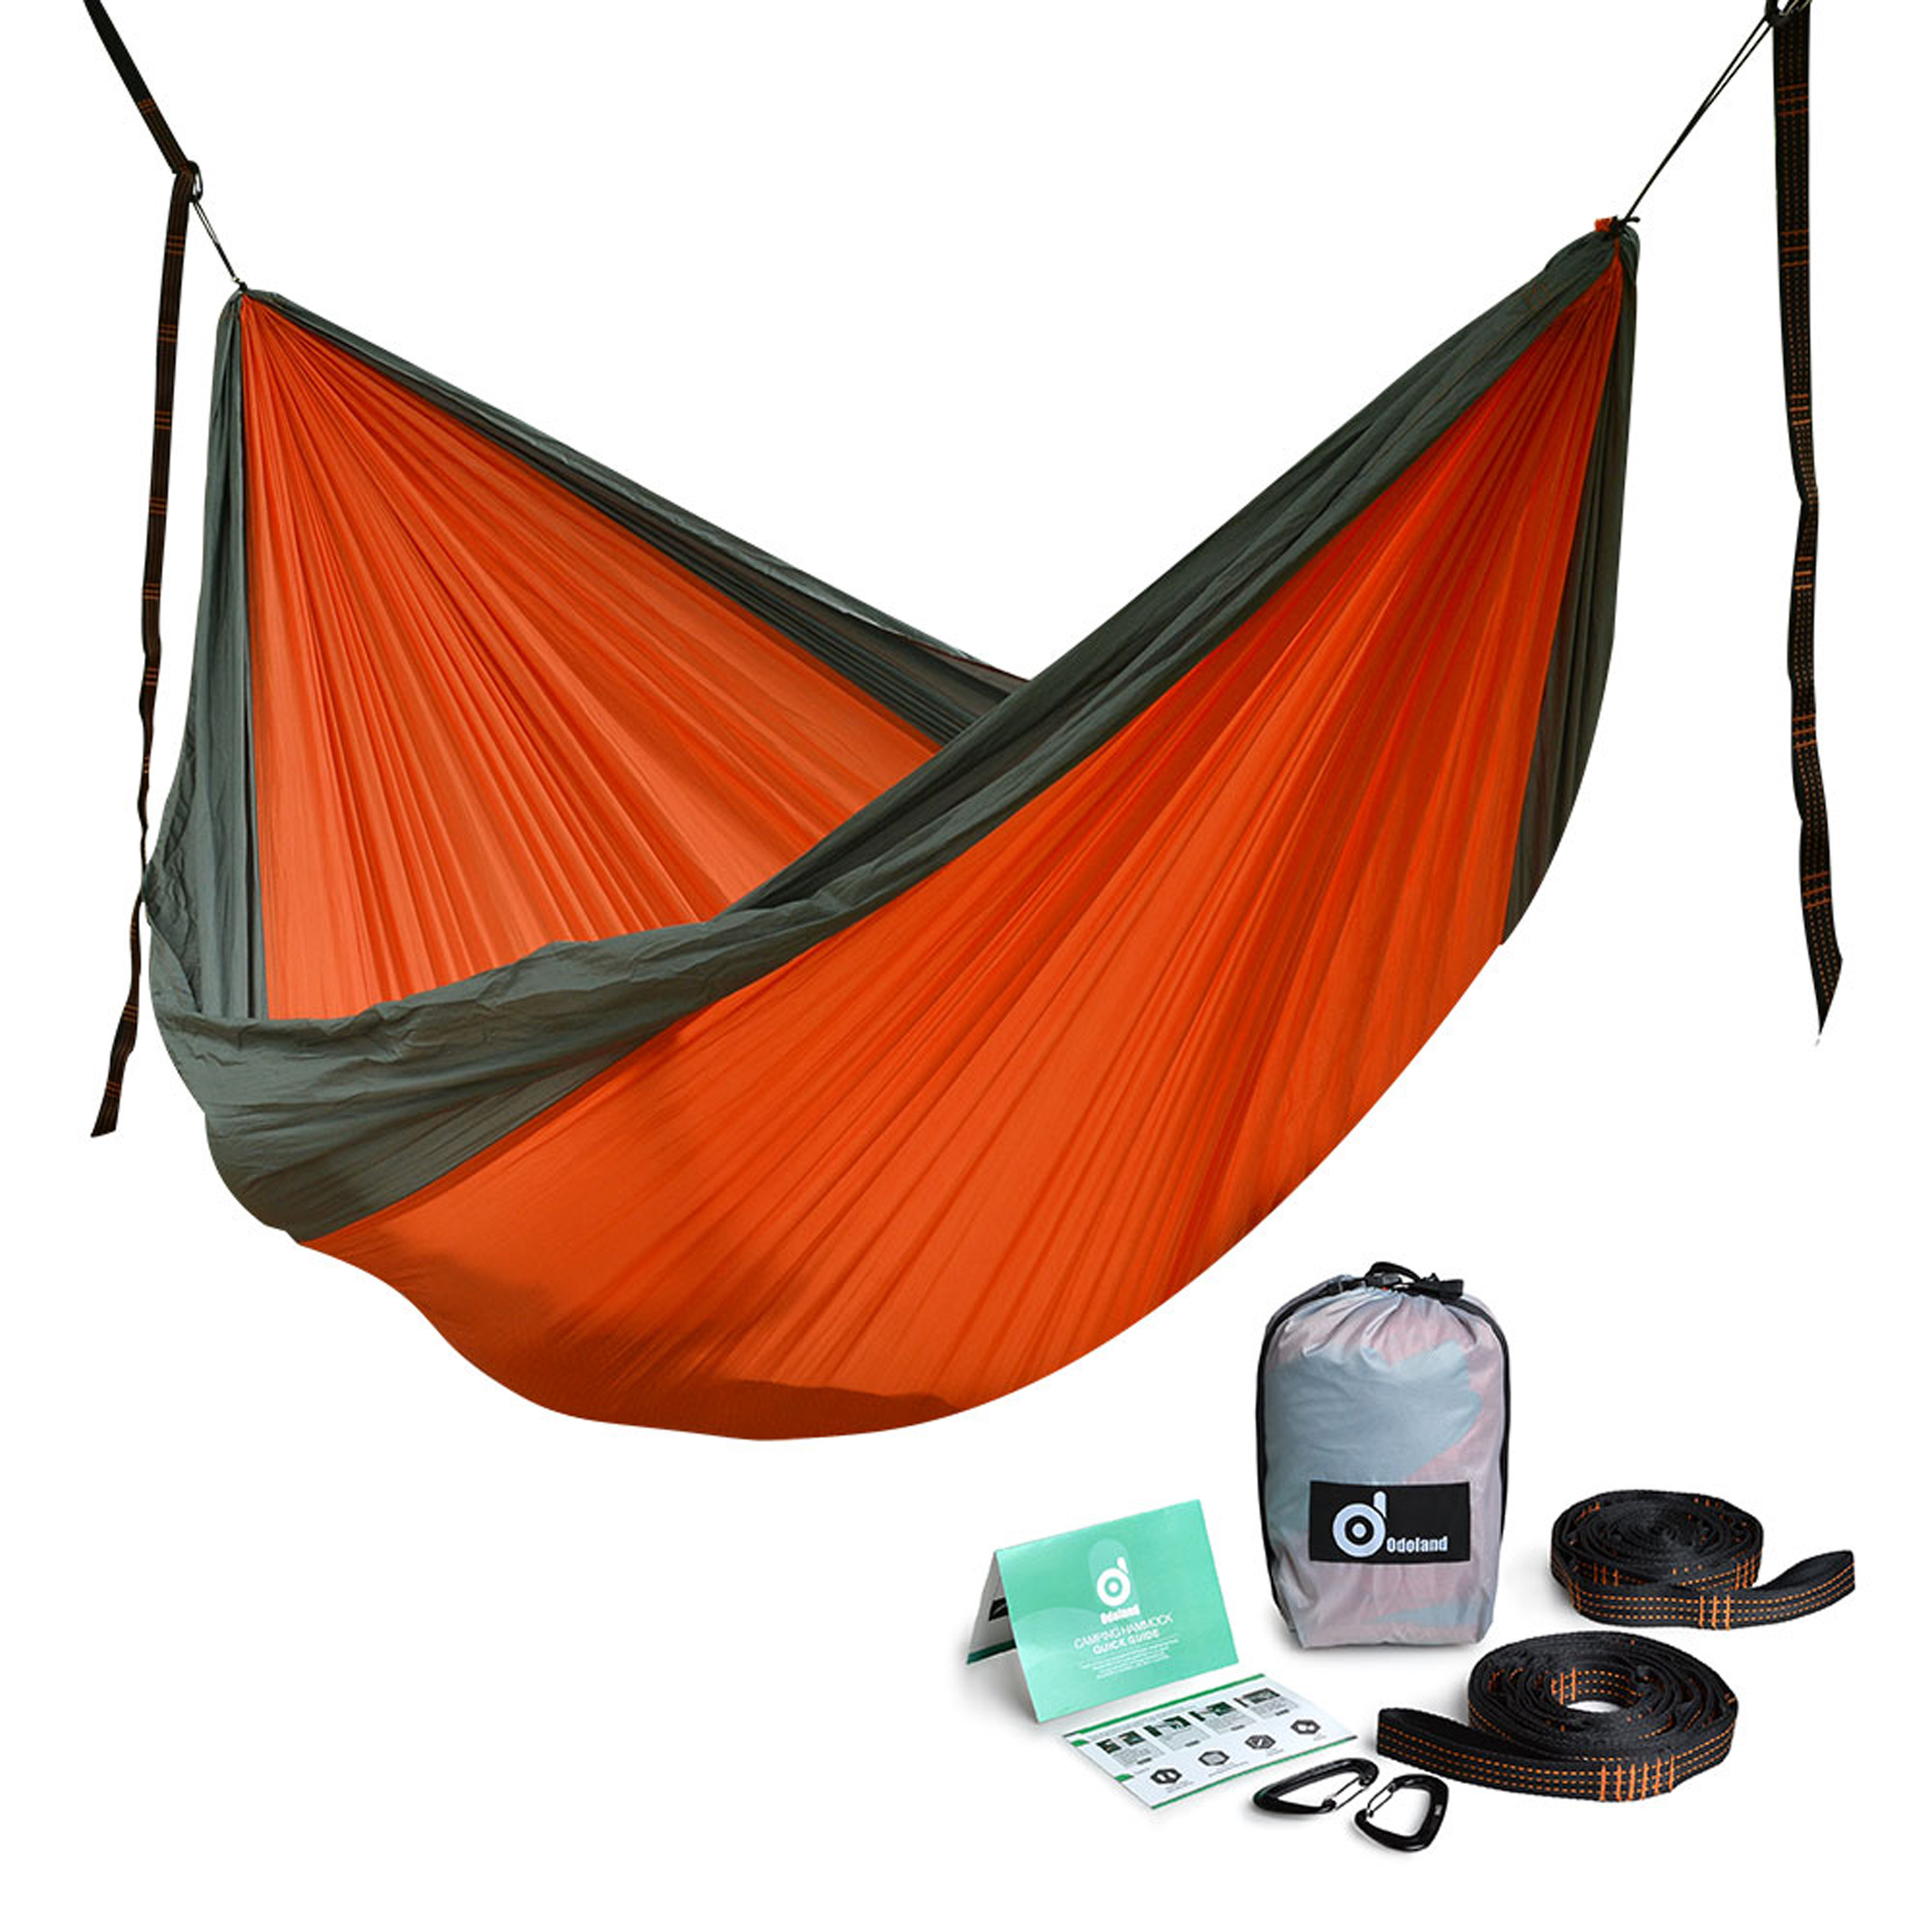 AGPtek Double Large Camping Hammock Lightweight Portable Hammock for Backpacking Travel Beach Yard